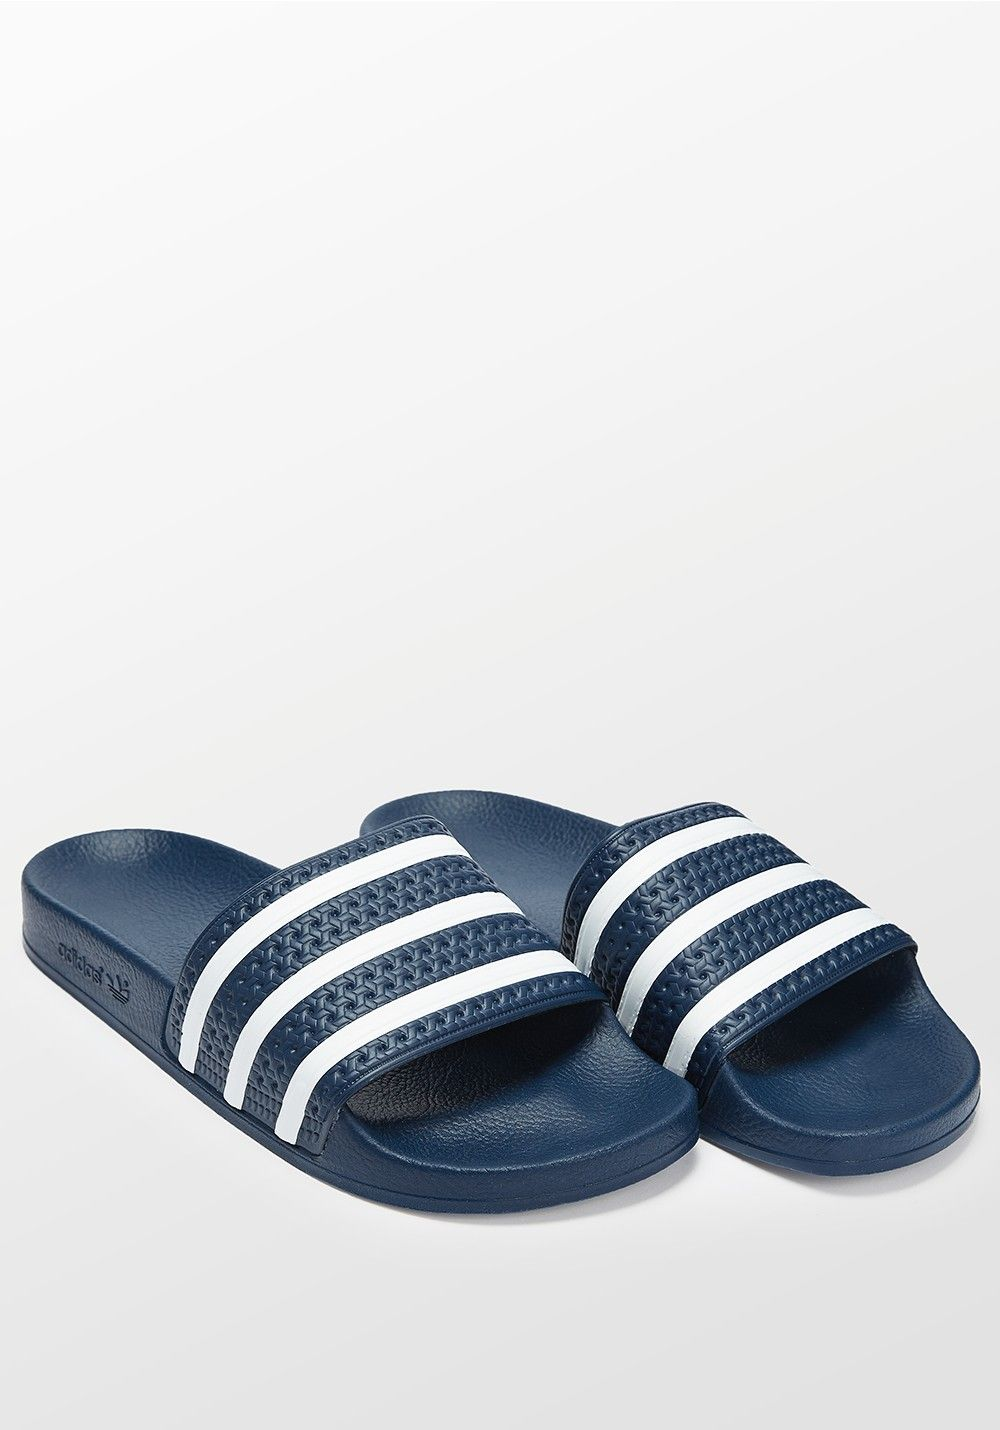 reputable site cb1b8 1aa5f Adidas Adilette navy blue and white slides